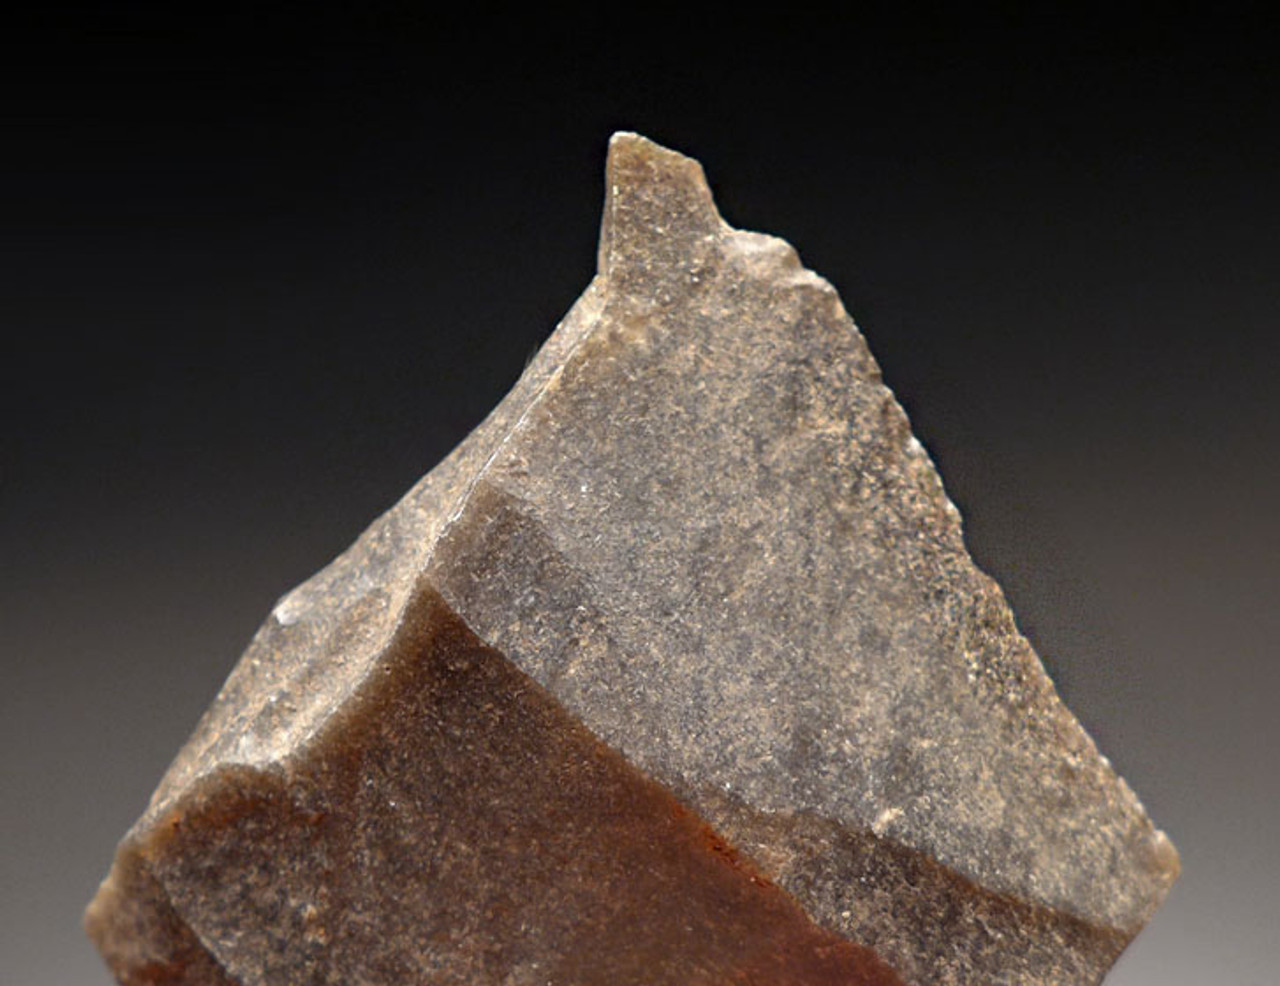 M366 - MOUSTERIAN NEANDERTHAL ENGRAVER FLAKE TOOL FROM FRANCE